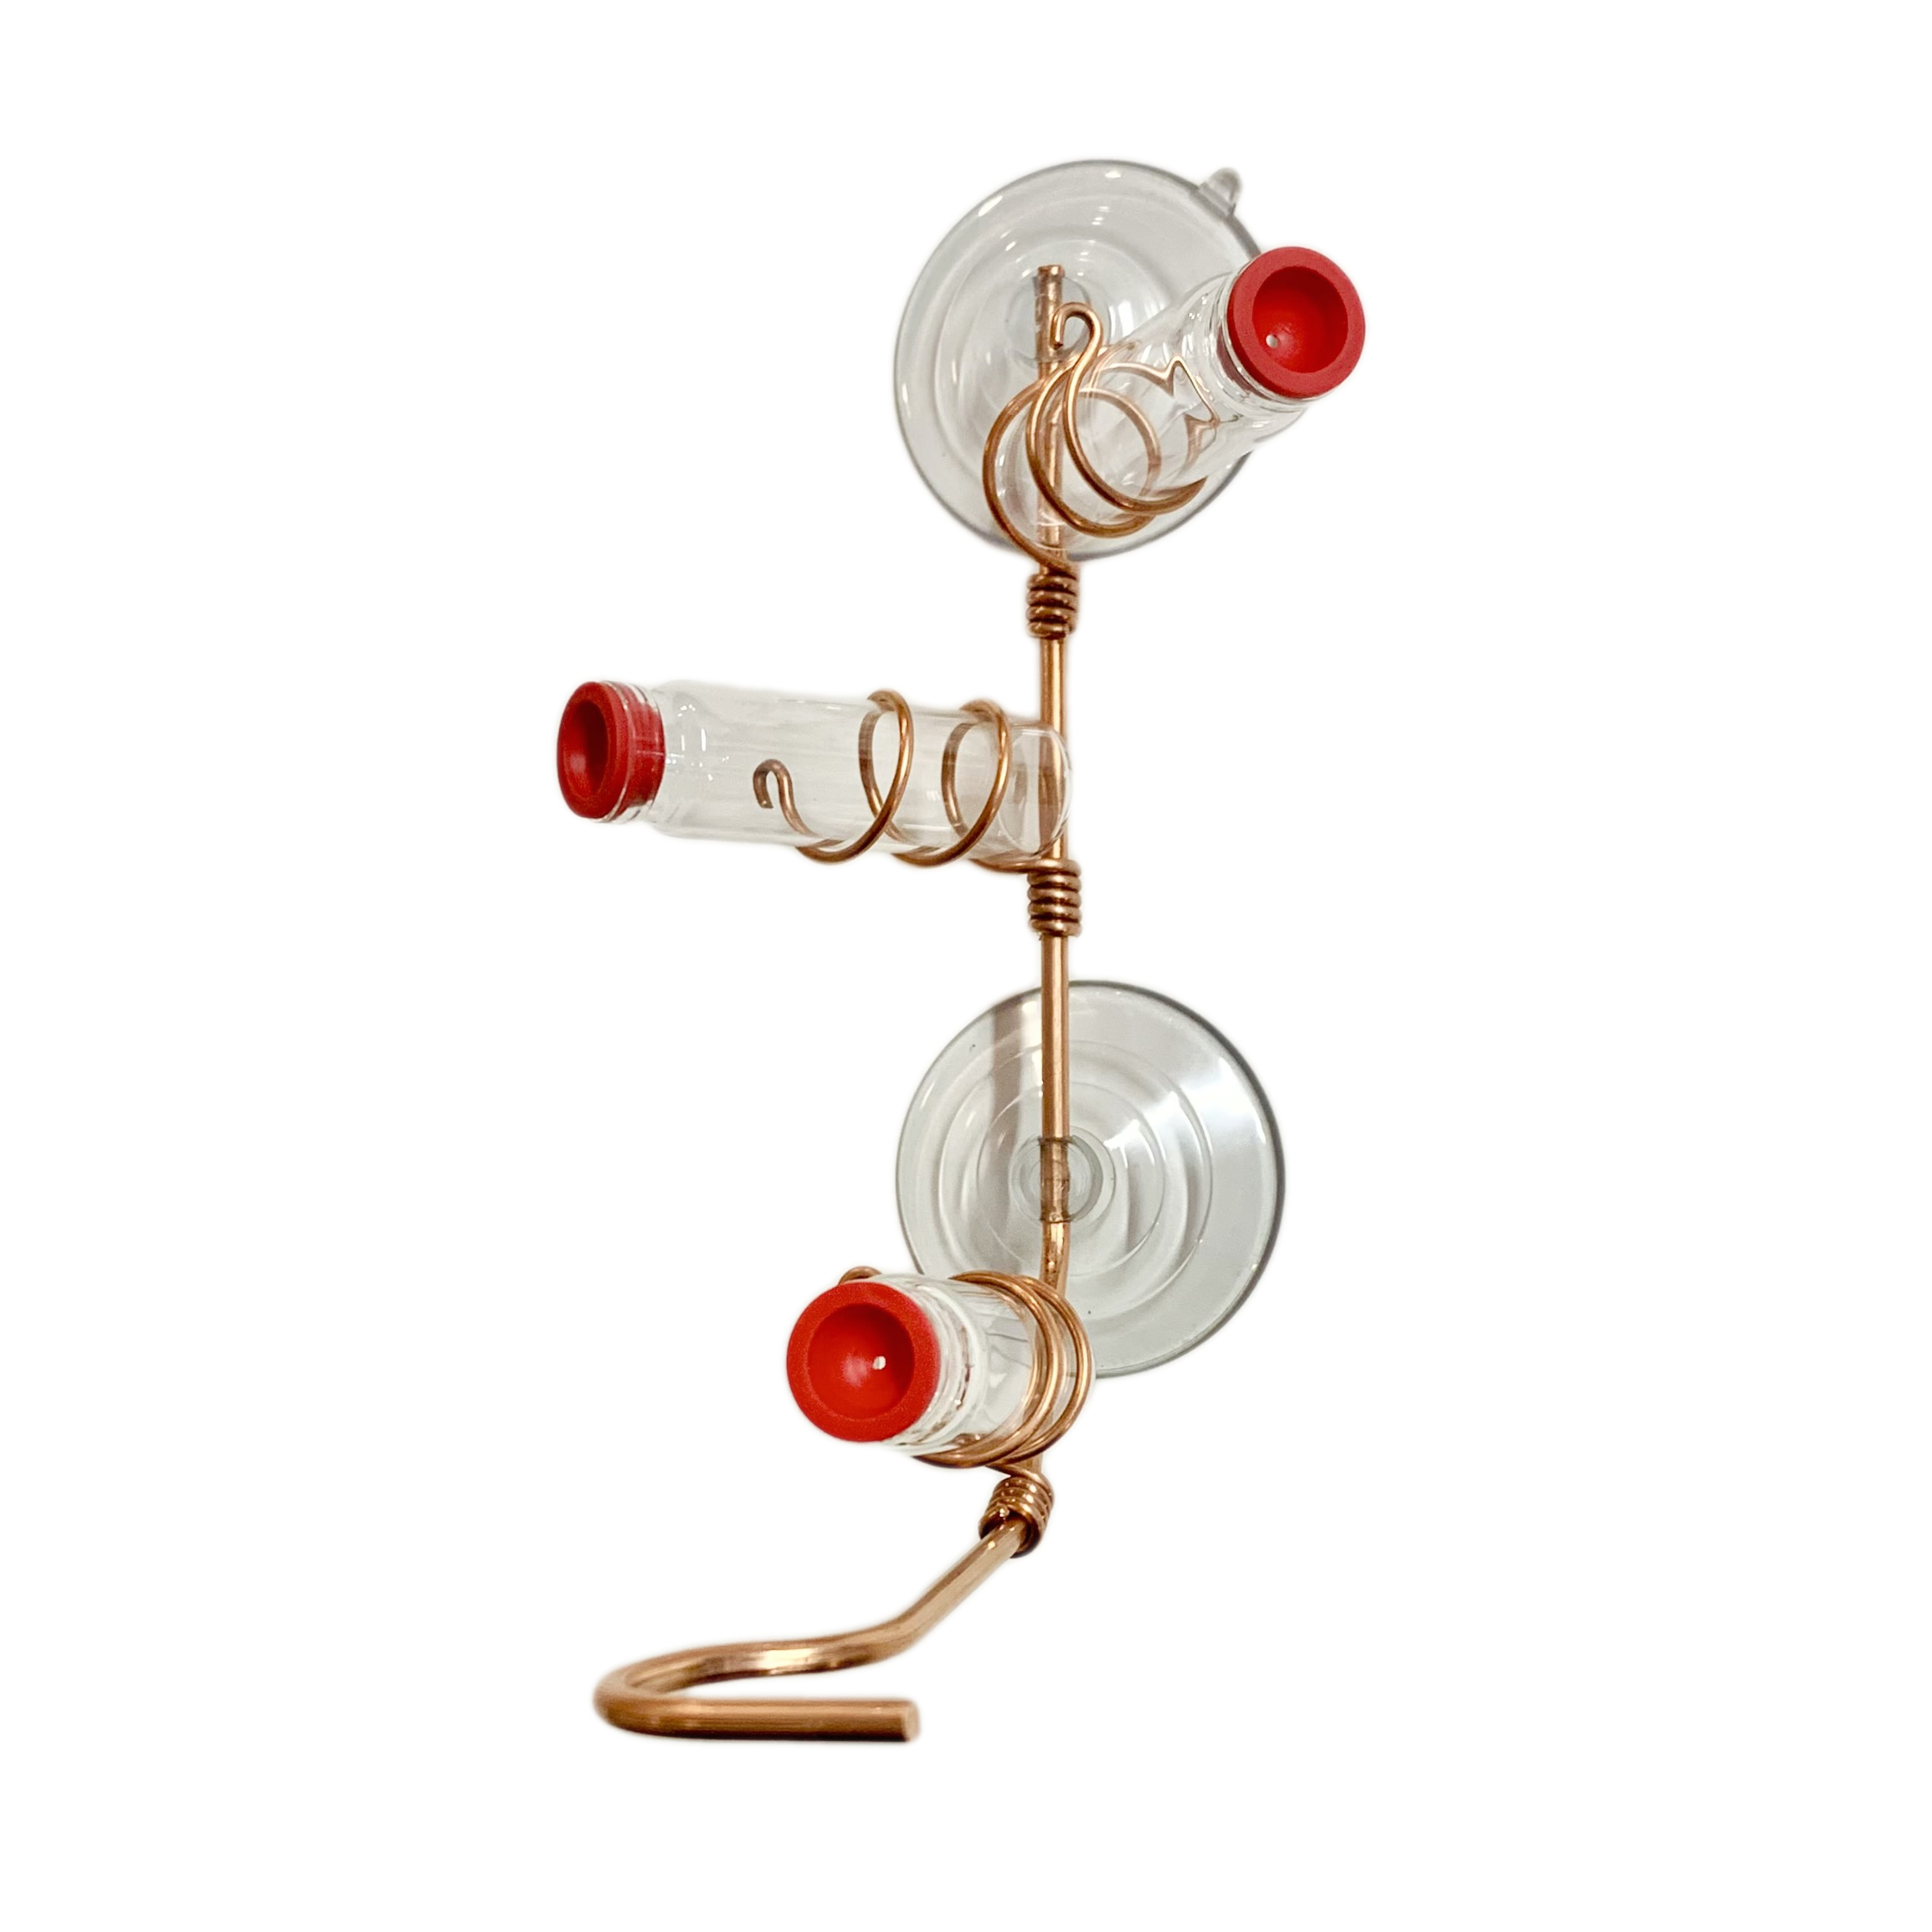 A simple window hummingbird feeder made from copper wire and three glass vials stands out on a white background